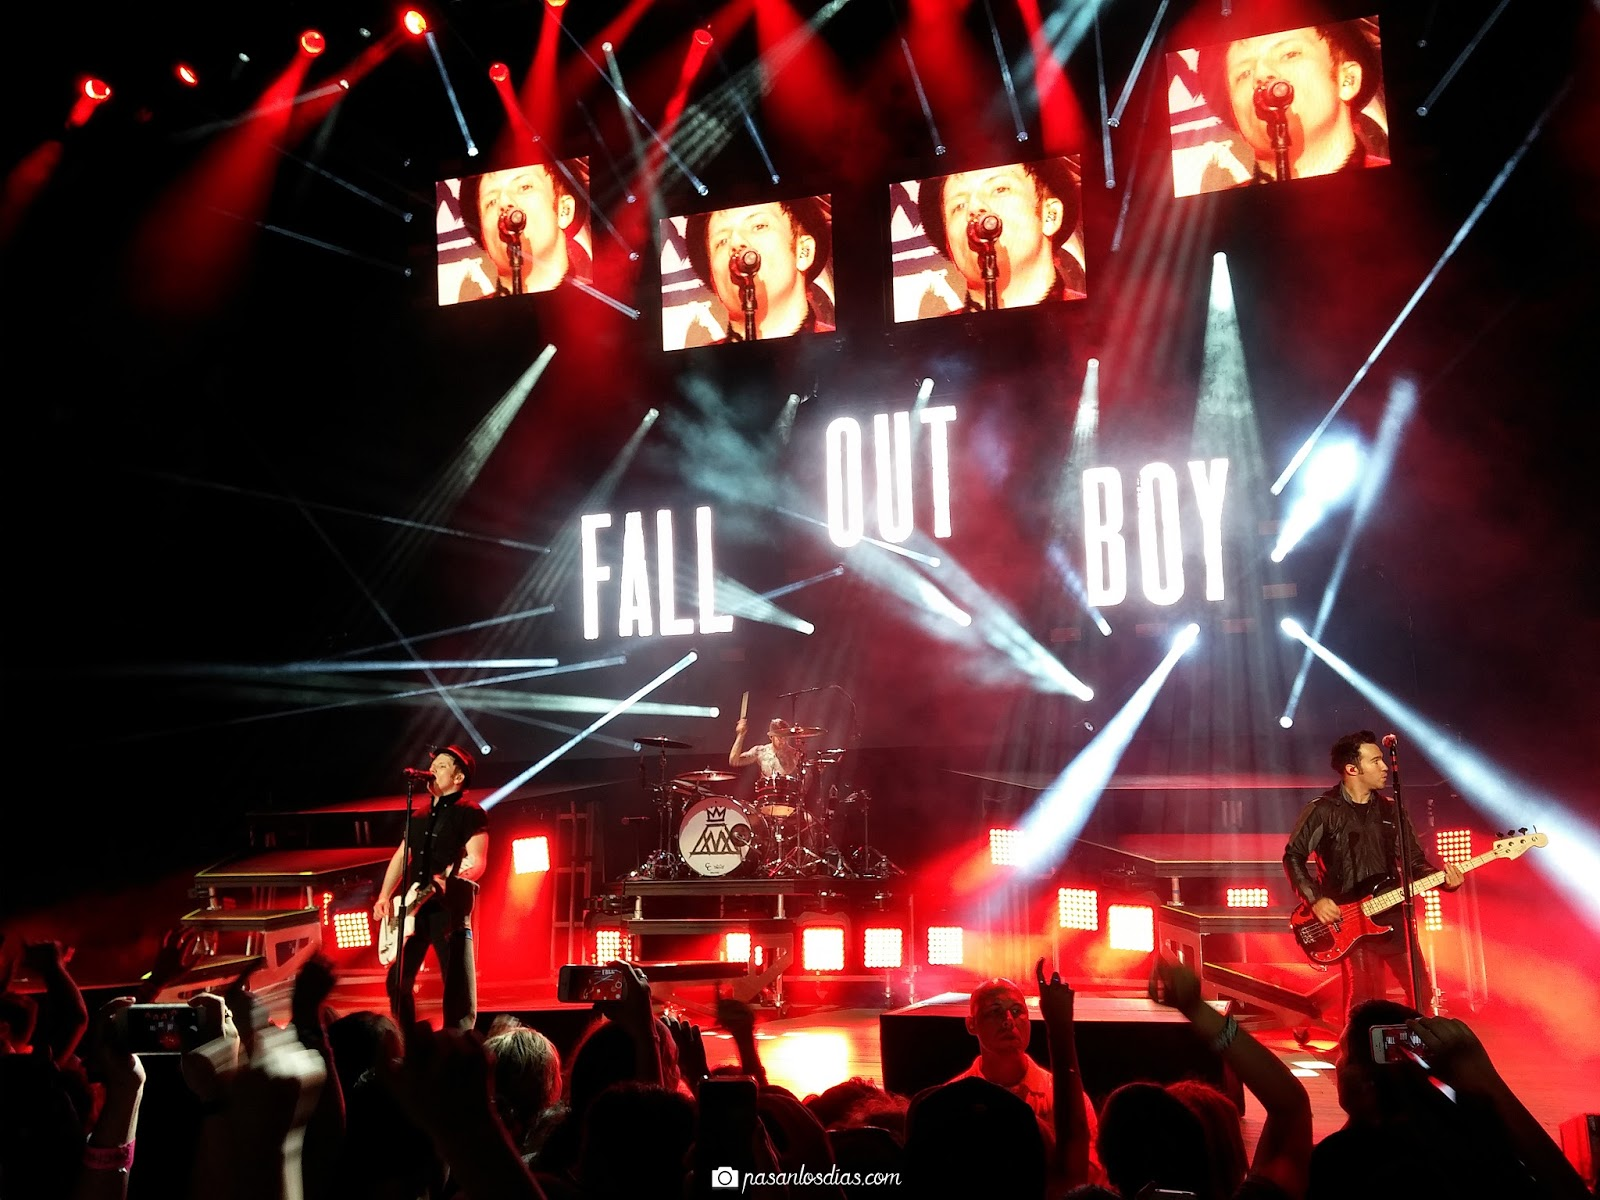 Chris Martin's blog of things: Fall Out Boy's Albums Ranked